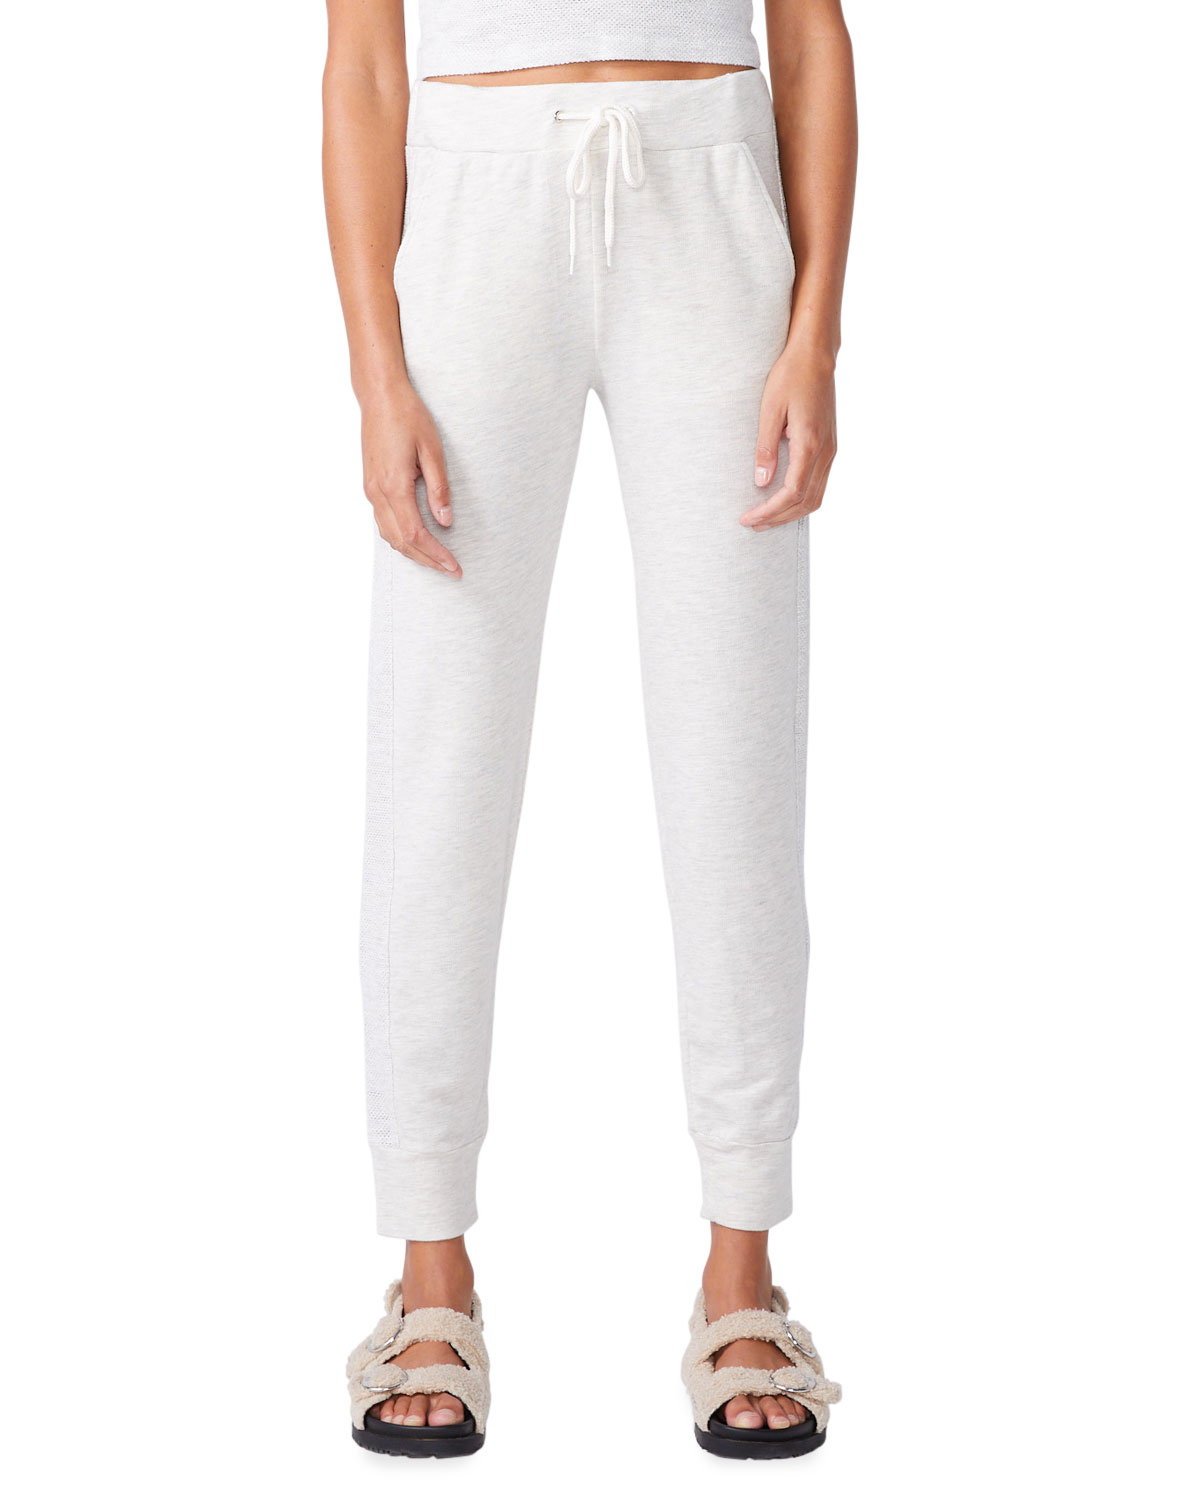 Supersoft Sporty Sweatpants